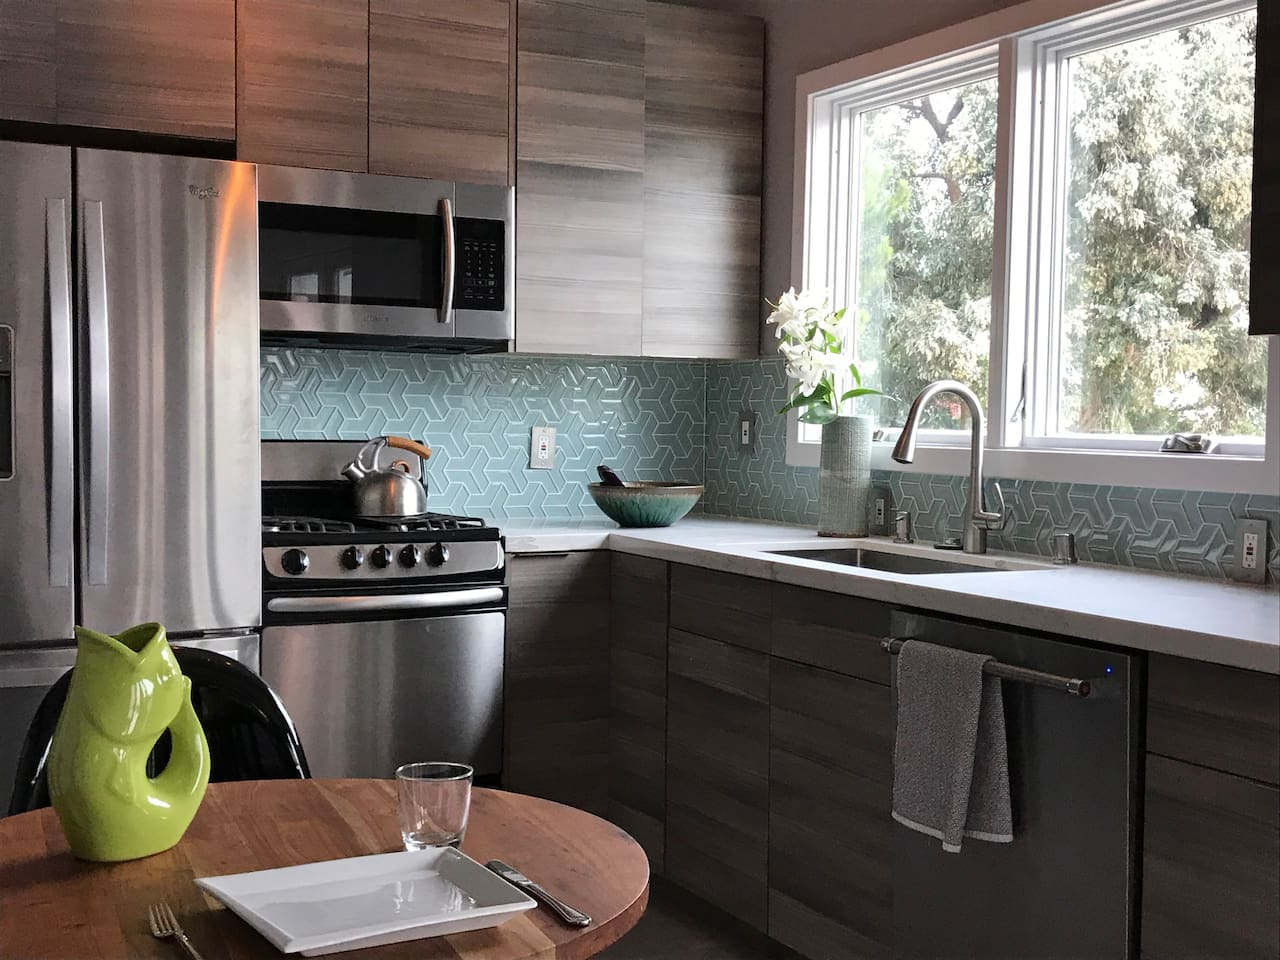 The stove, large sink and dishwasher are perfect for preparing food during your stay. Safeway is 1 block away and the Grand Lake farmer's market (held every Saturday) is only a short 3-block walk away.